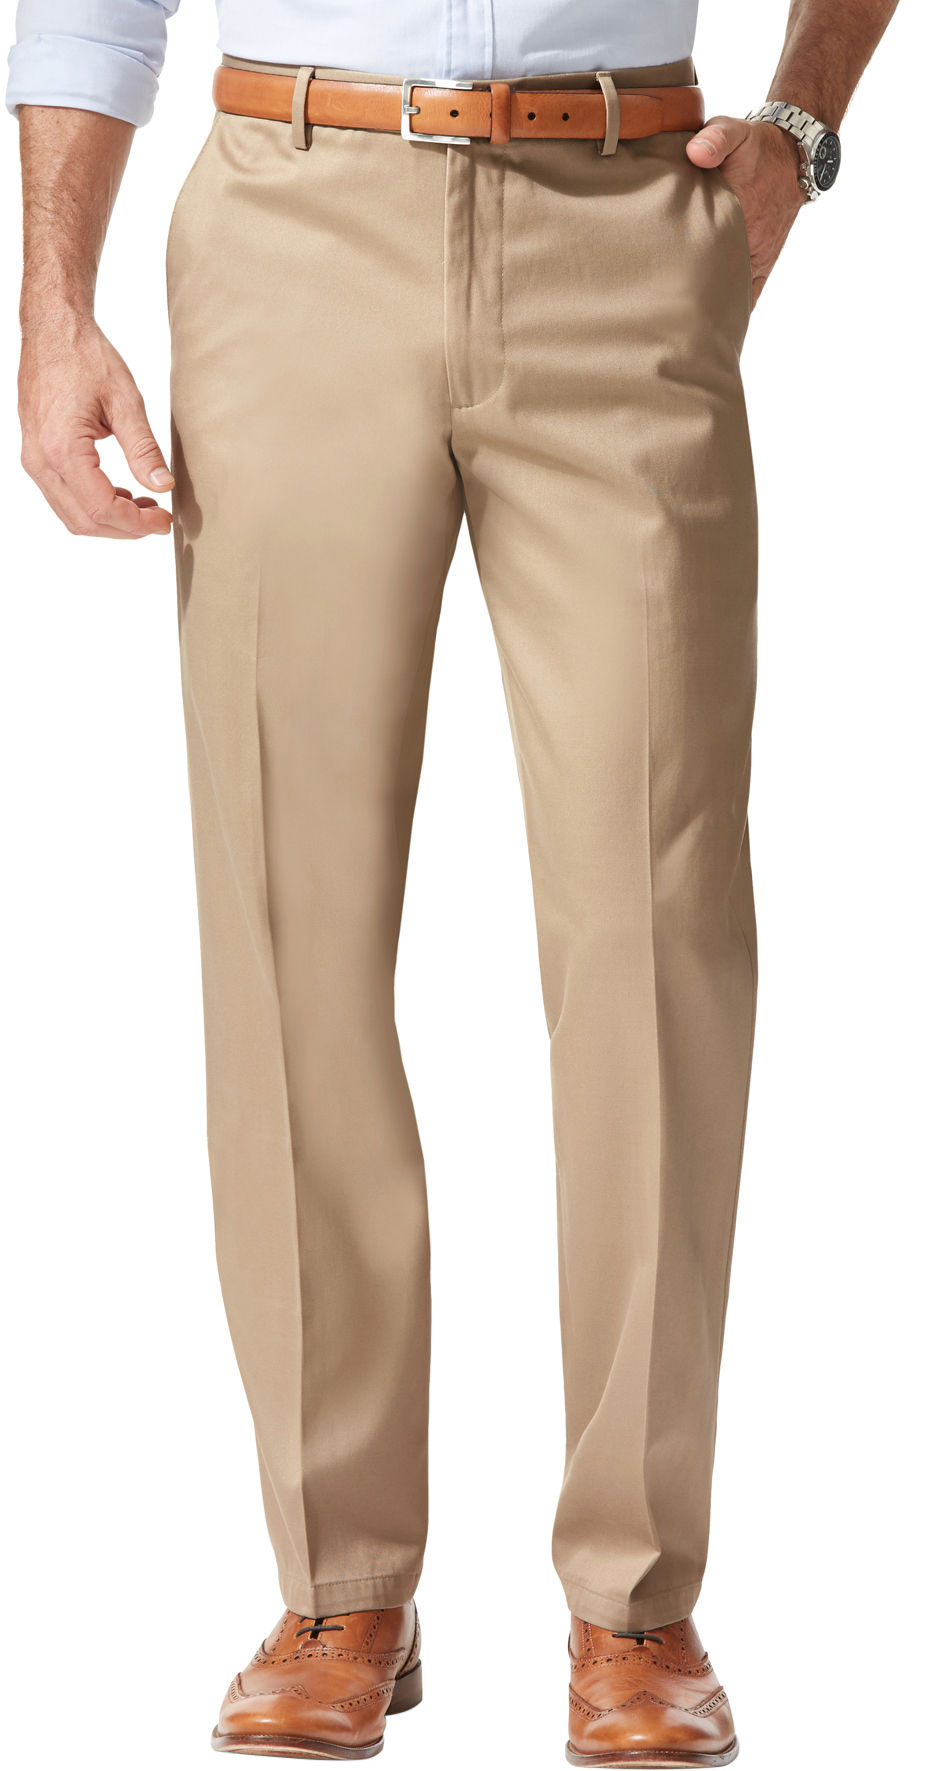 Dockers Men's Easy Khaki D3 Classic-fit Pleated Pants Brands: Dockers, Levi's and more.